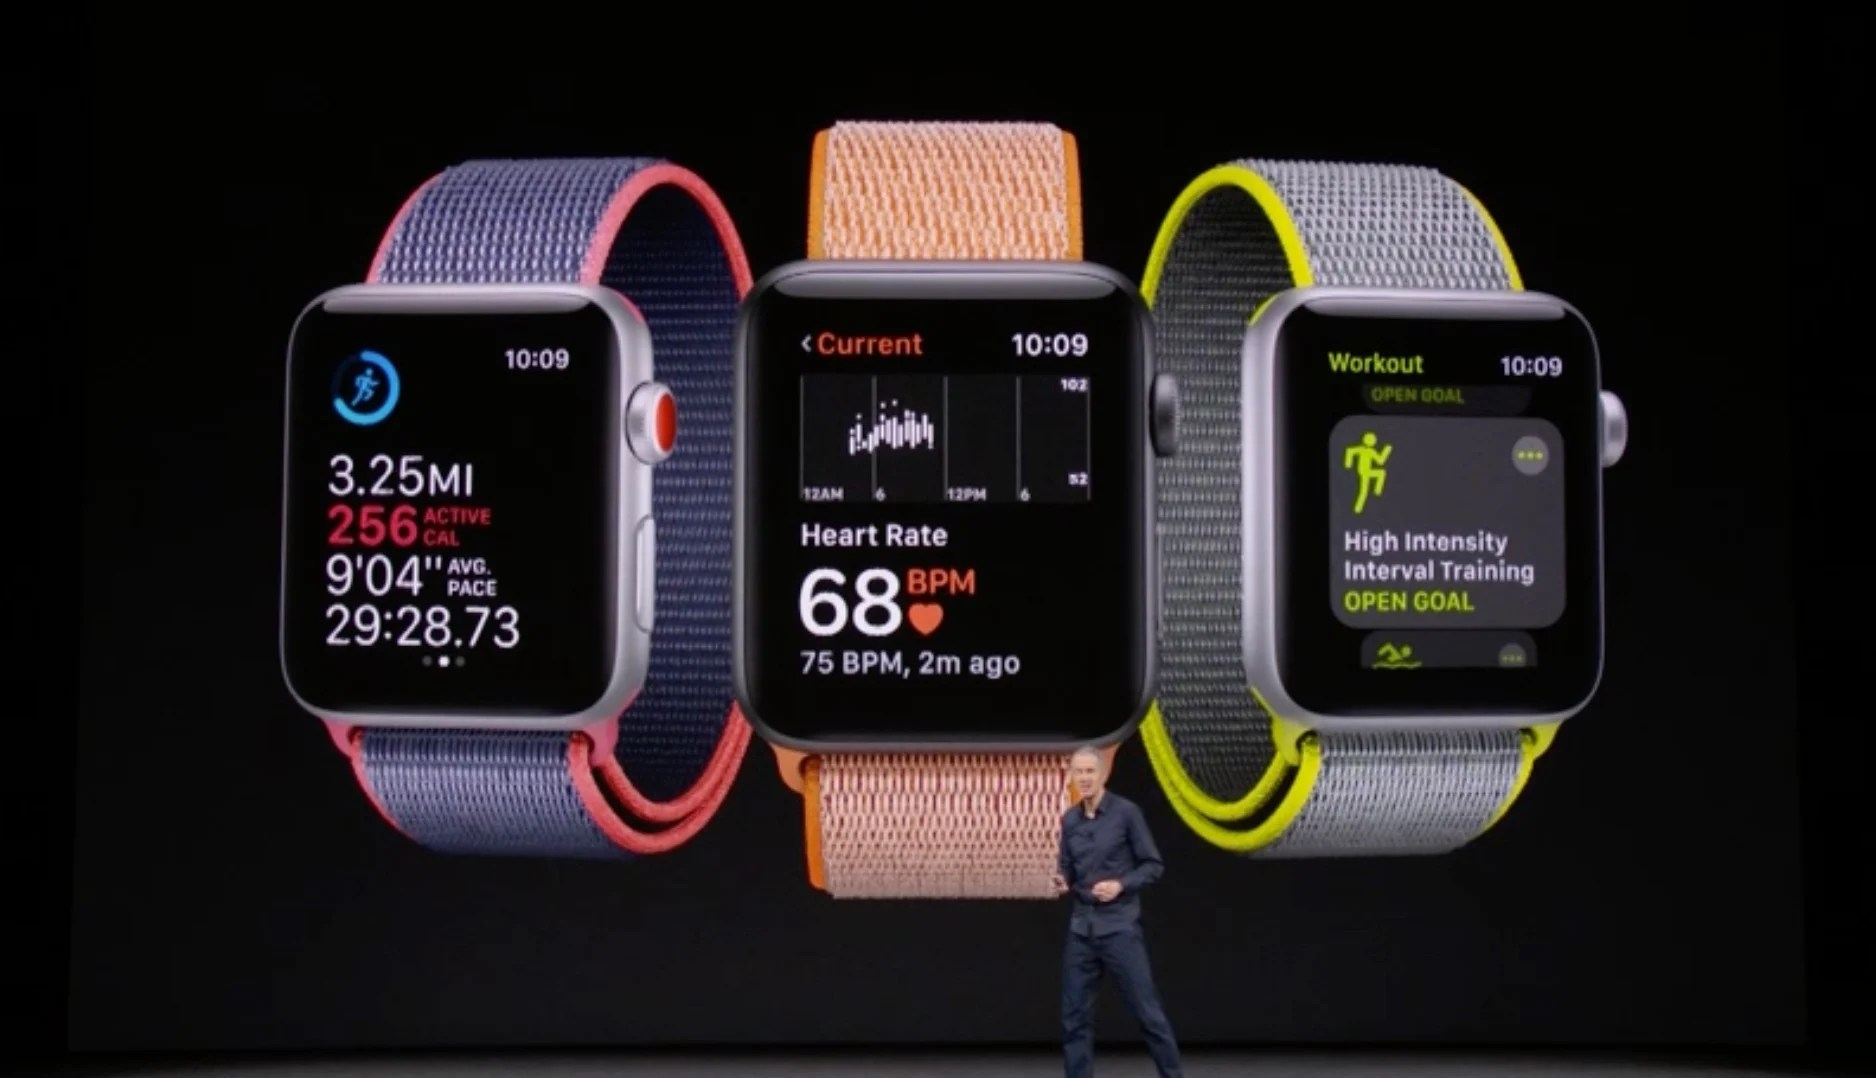 Your Apple Watch cellular plan? That'll be $10 a month